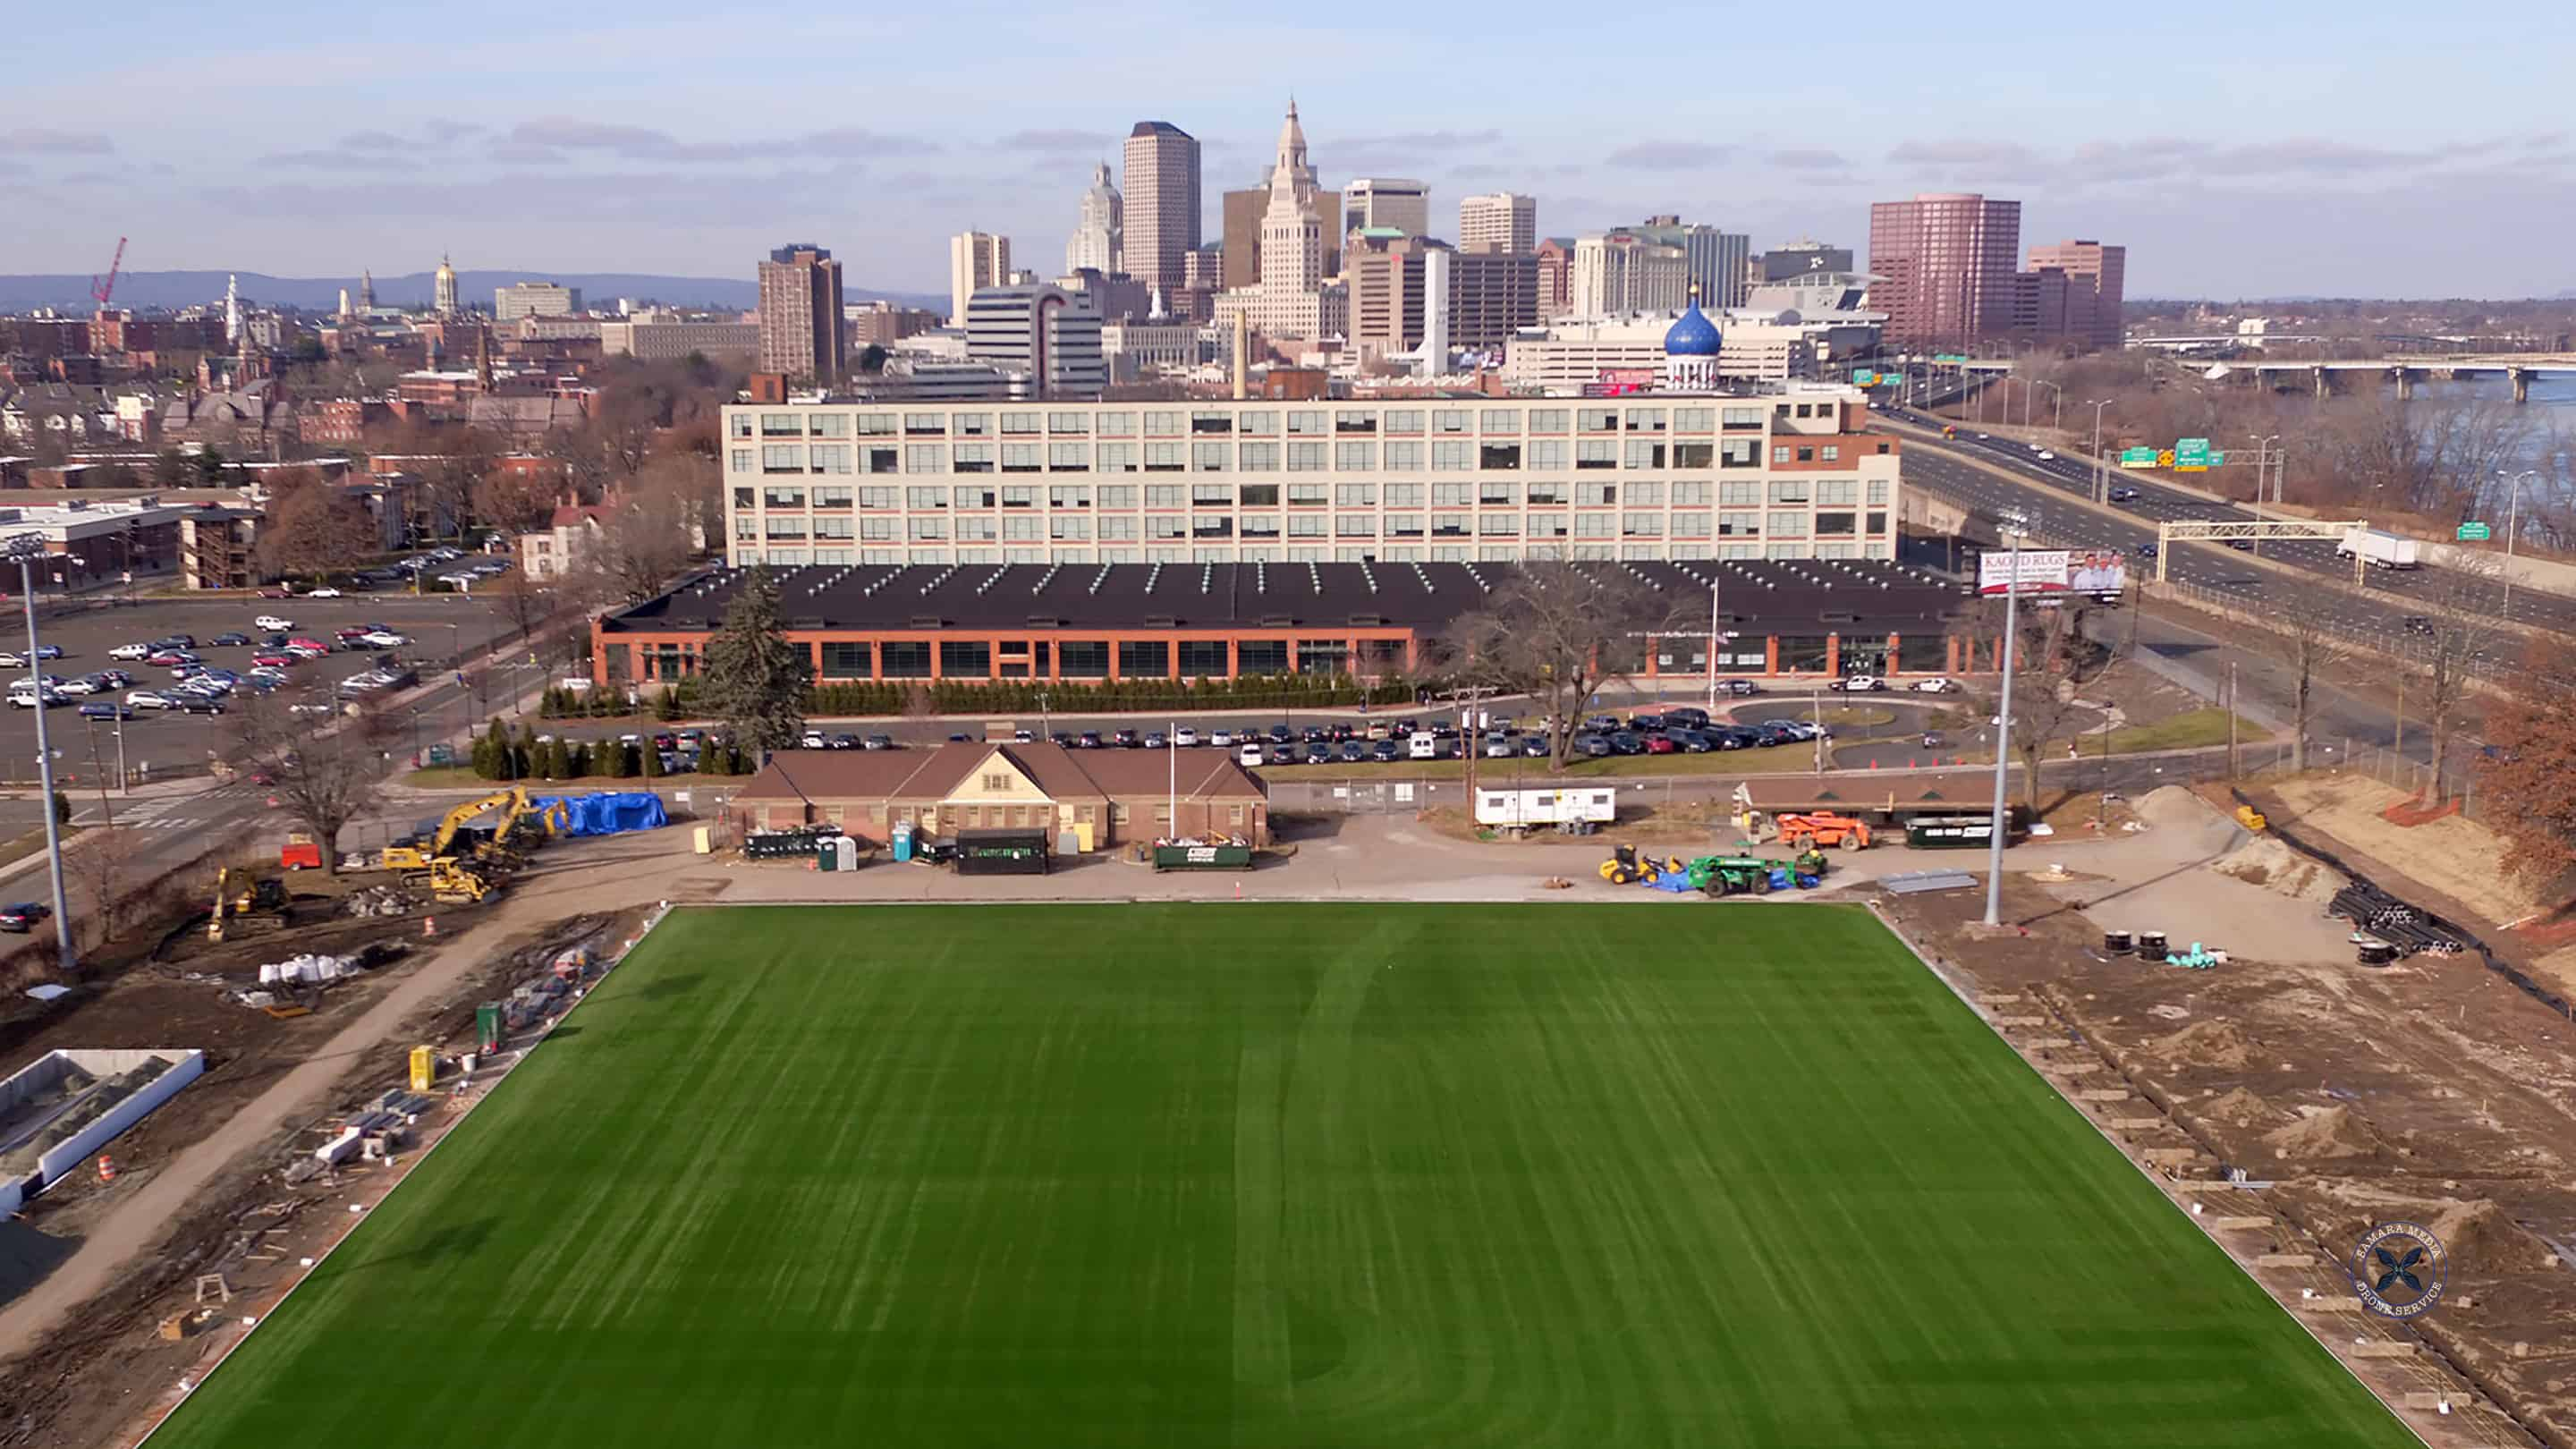 Construction continues on the soccer field at Dillon Stadium in Hartford Connecticut